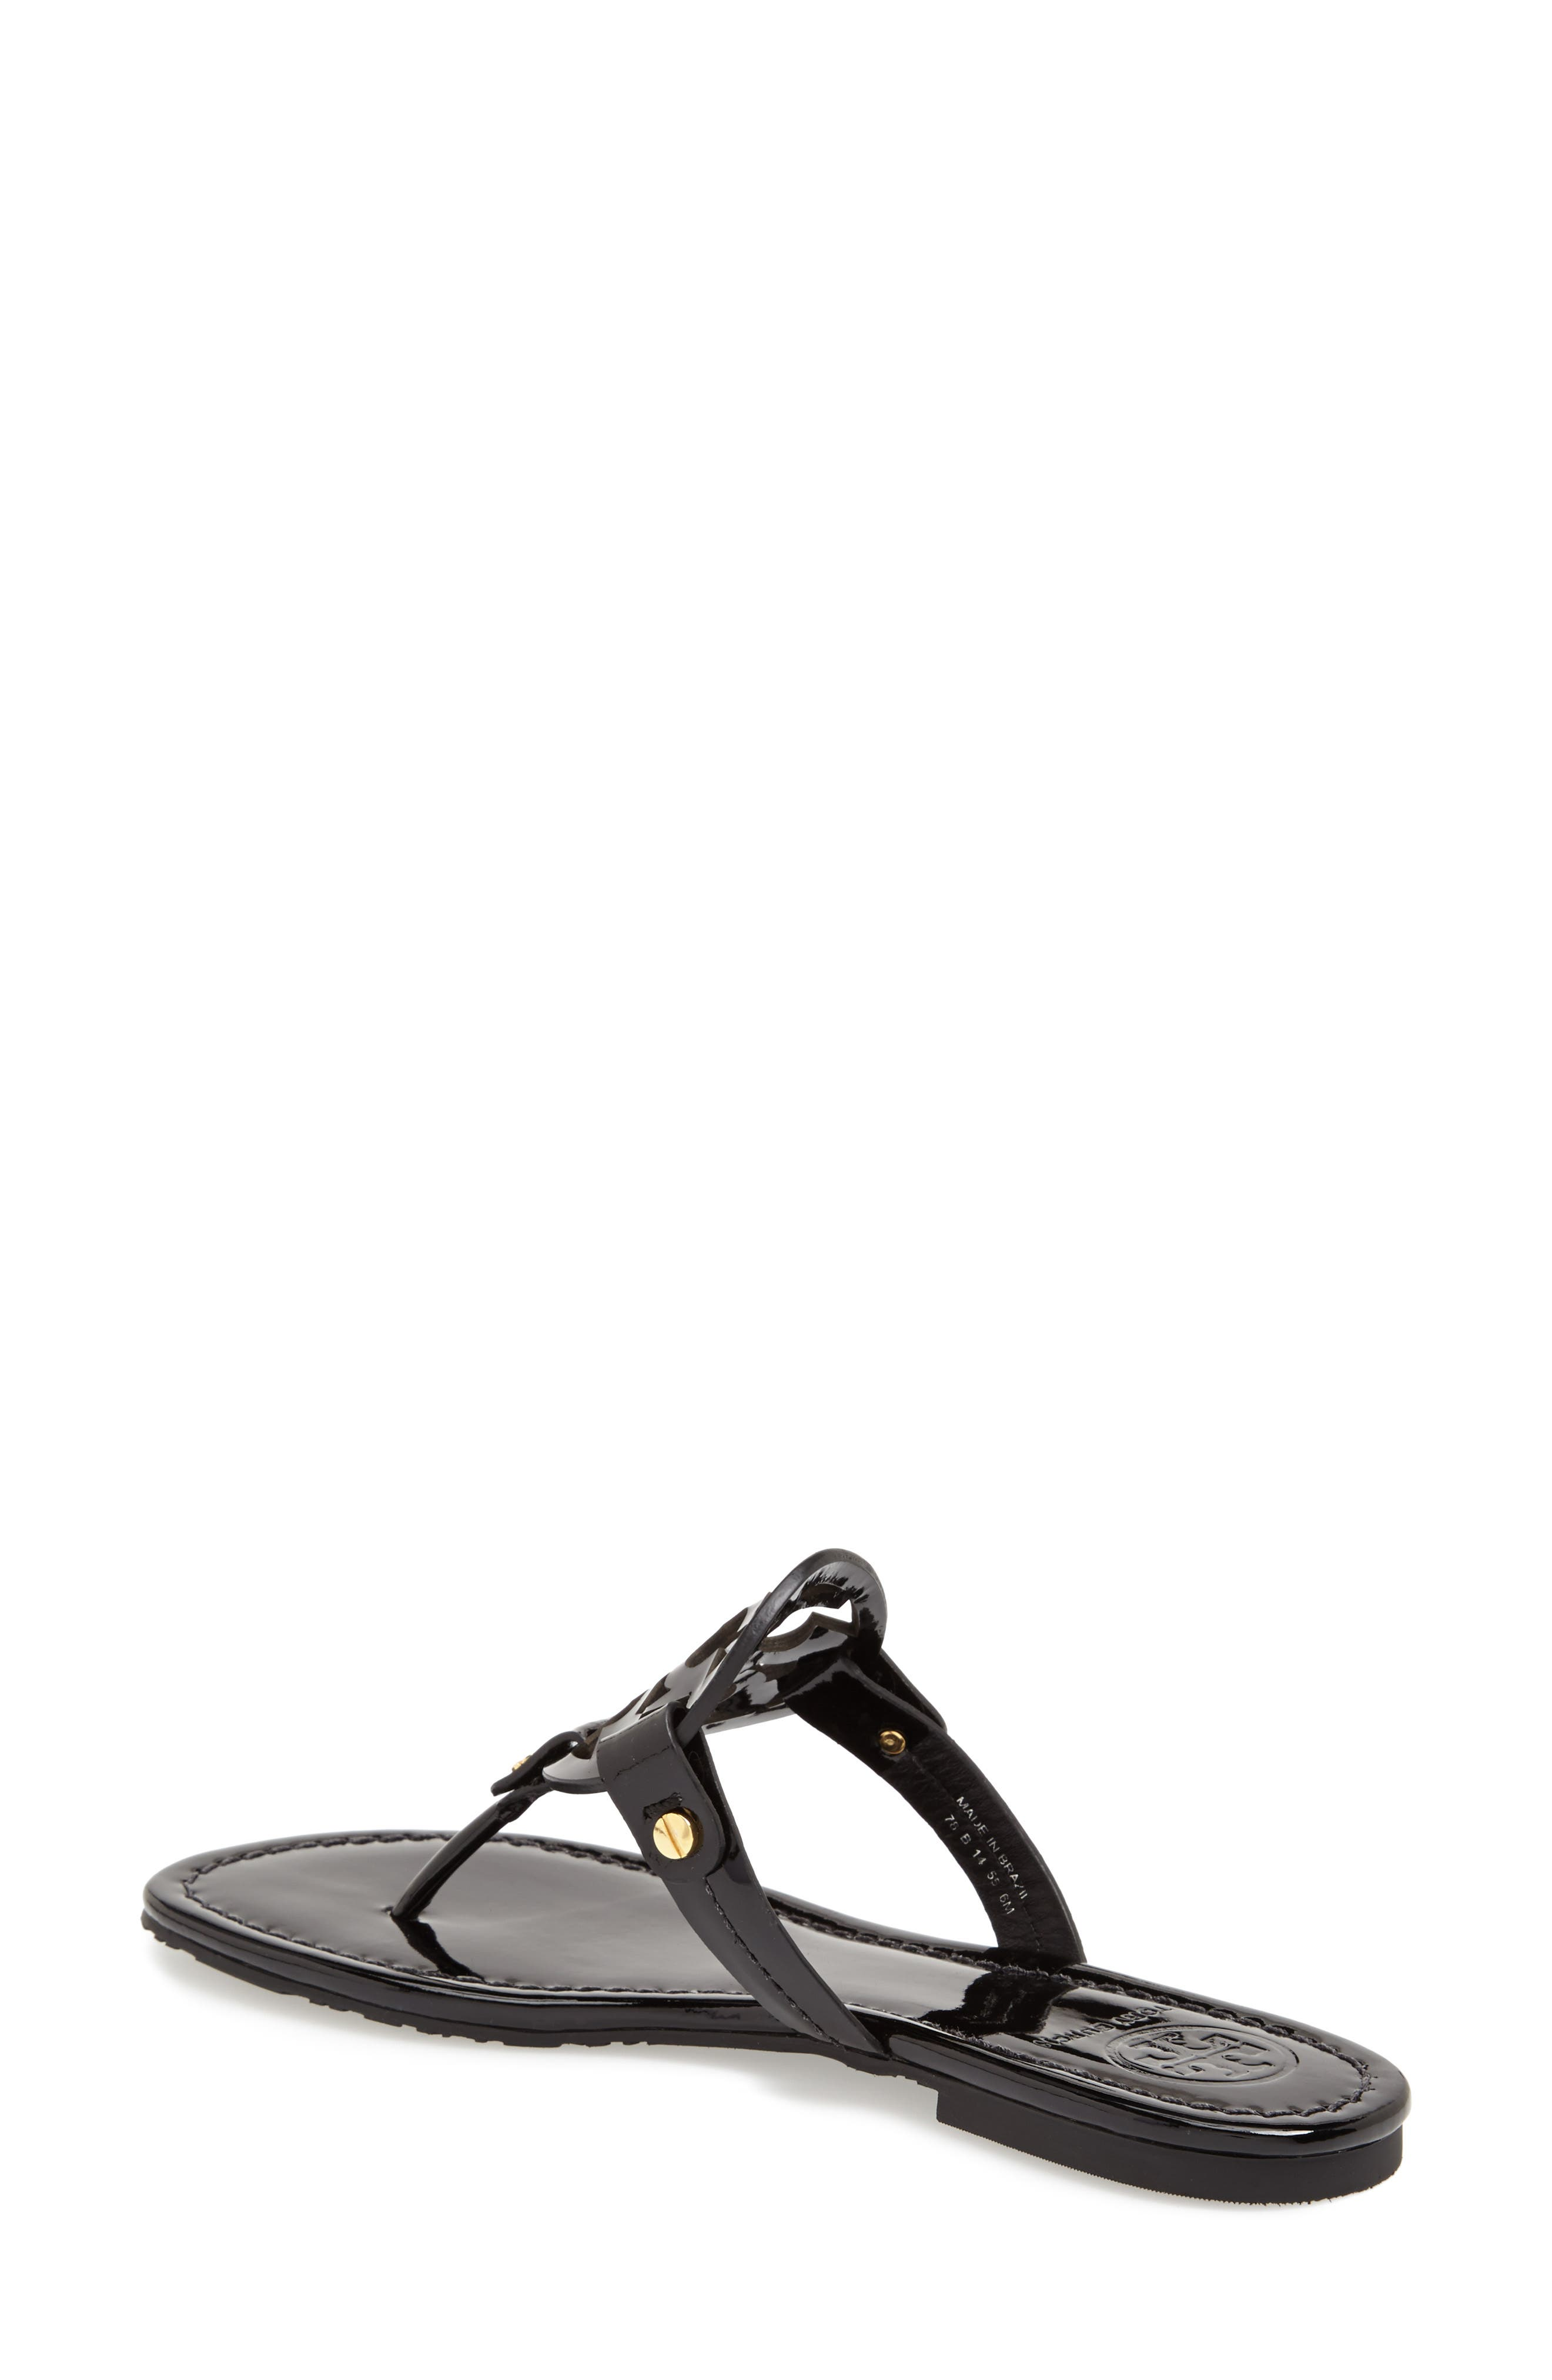 'Miller' Flip Flop,                             Alternate thumbnail 2, color,                             BLACK PATENT